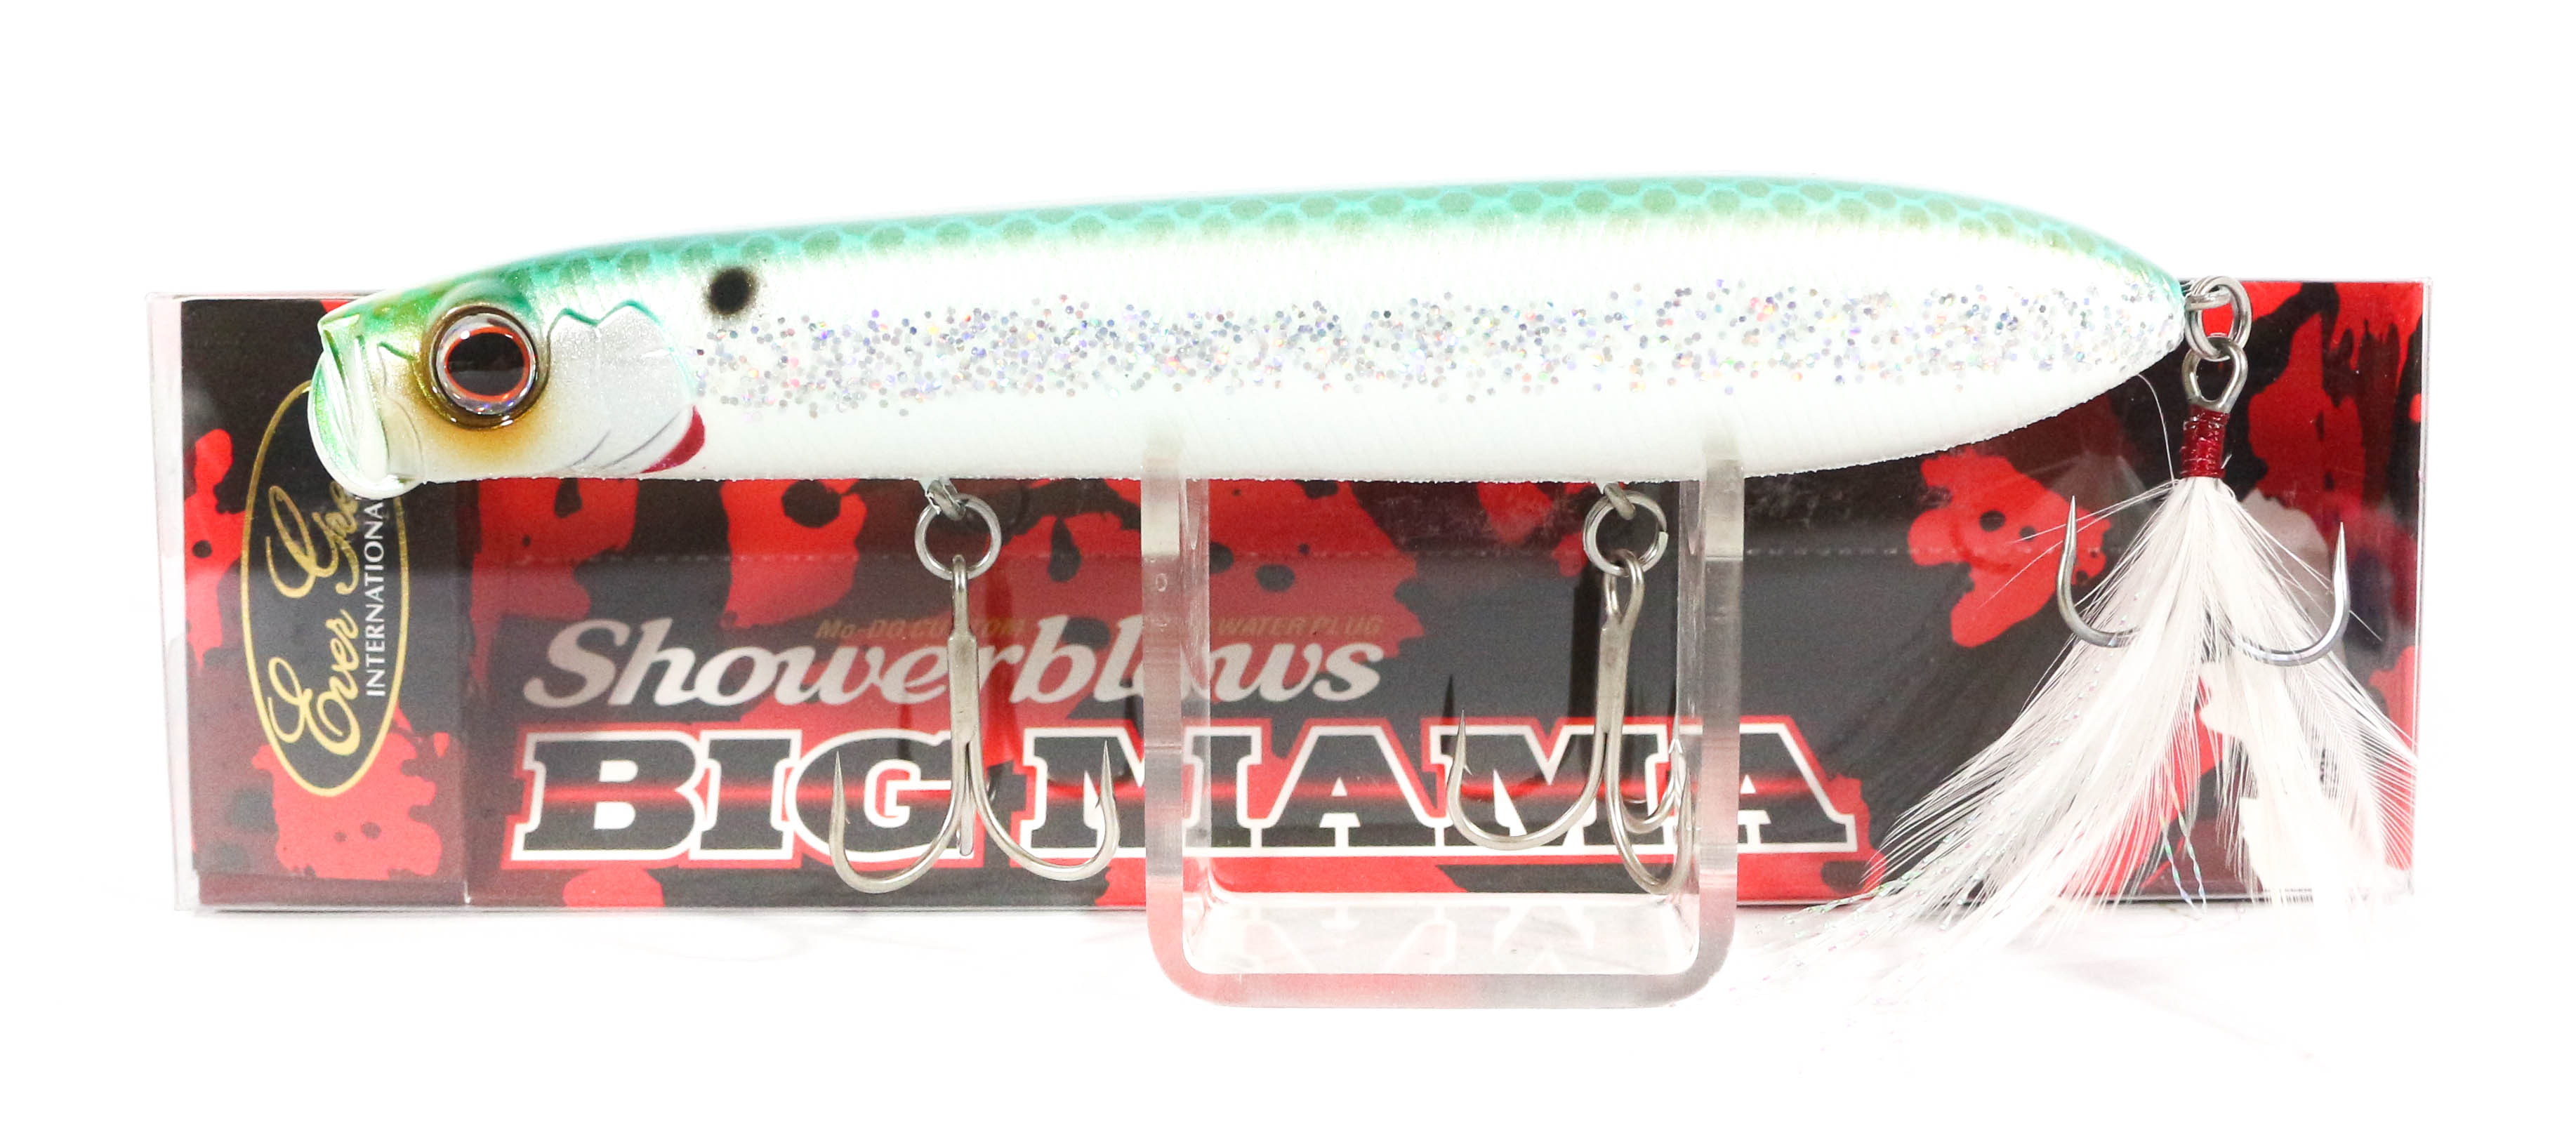 Evergreen Shower Blows Big Mama 150mm Pencil Floating Lure 244 (4342)